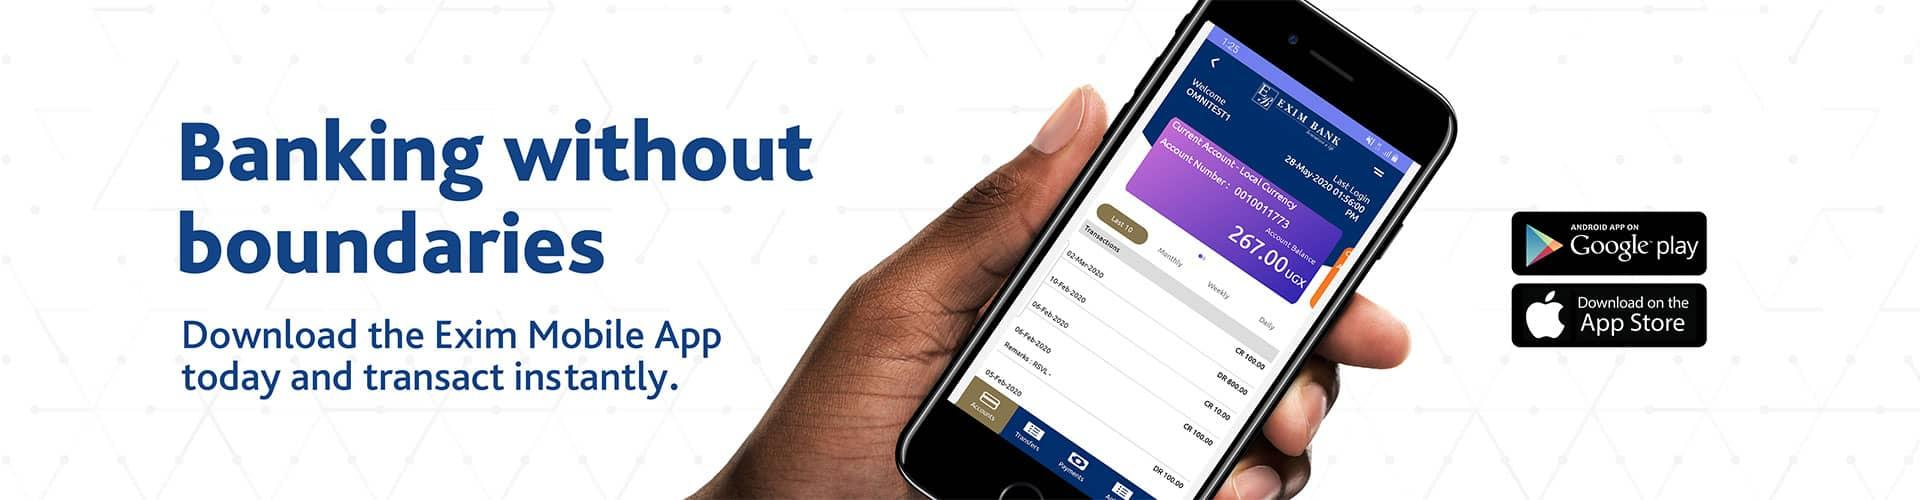 Exim Mobile Banking App